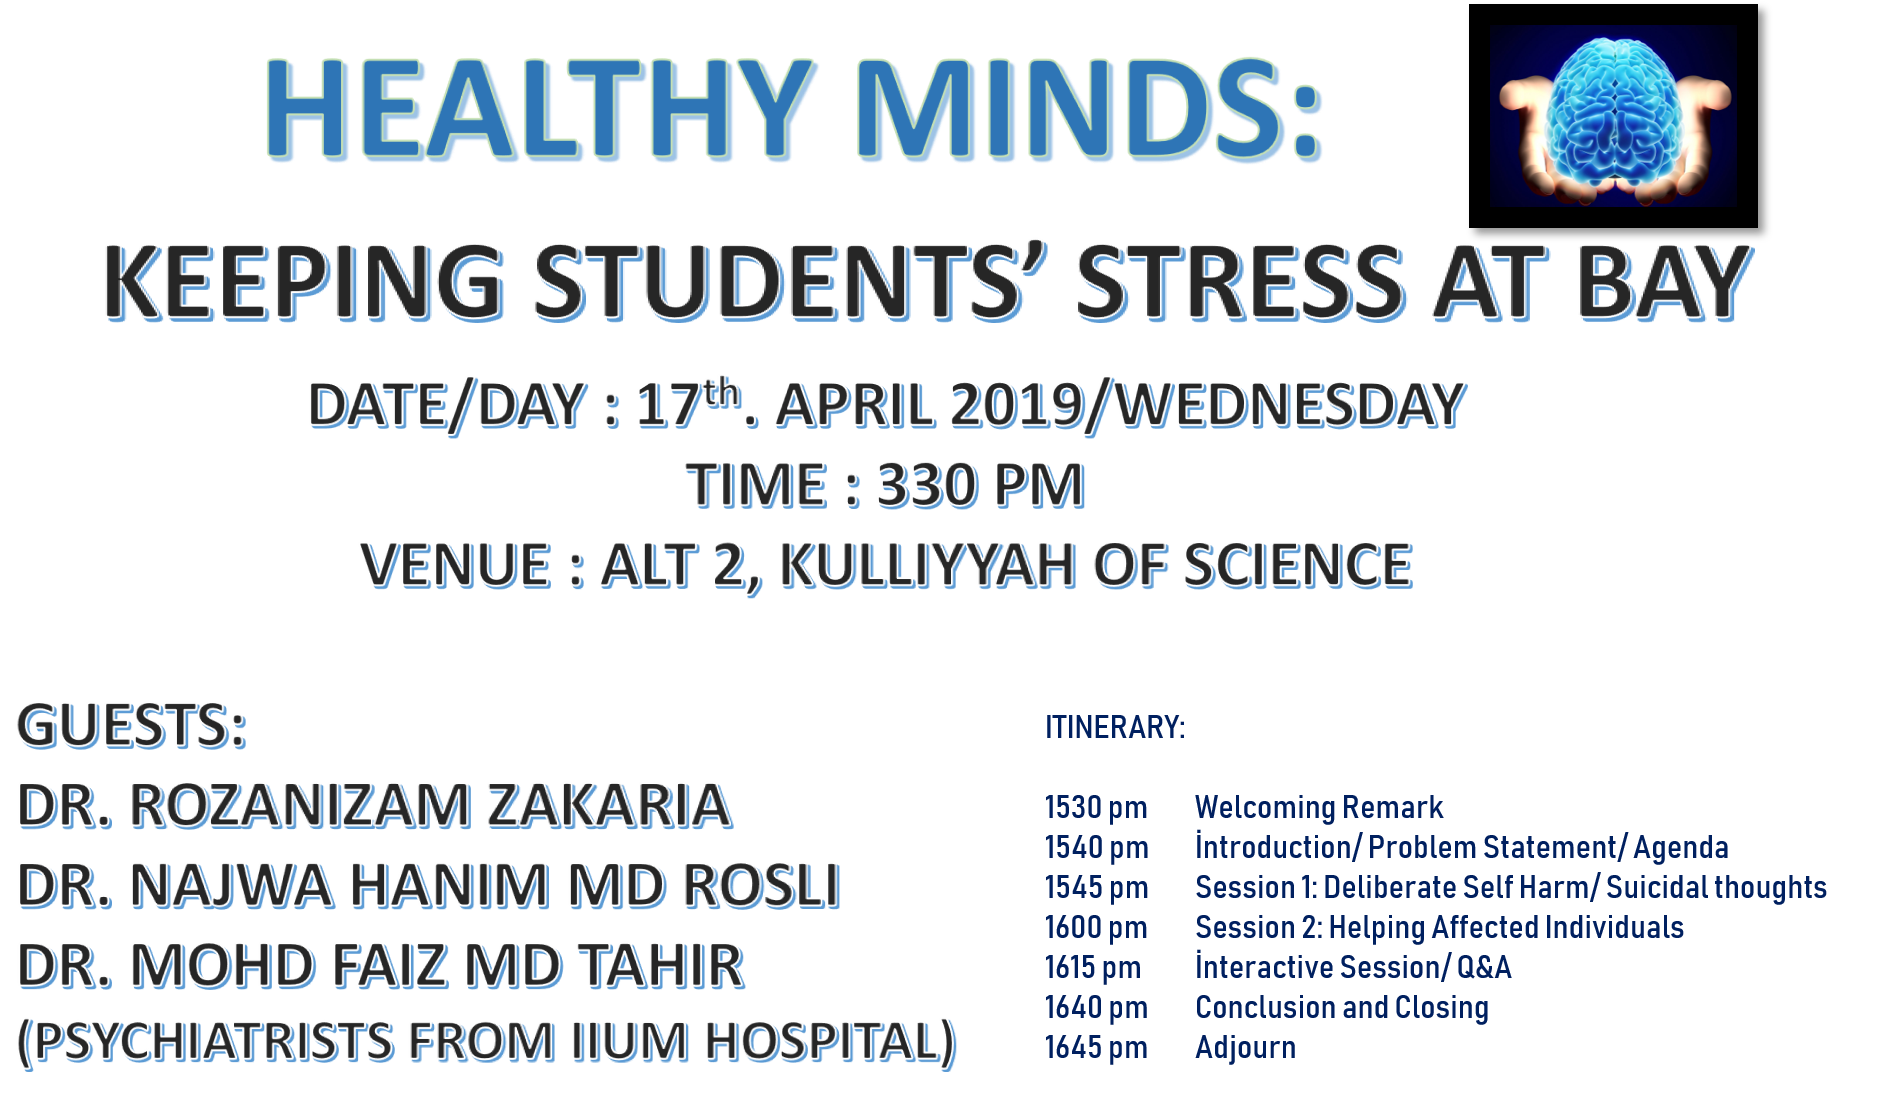 HEALTHY MINDS: KEEPING STUDENTS STRESS AT BAY